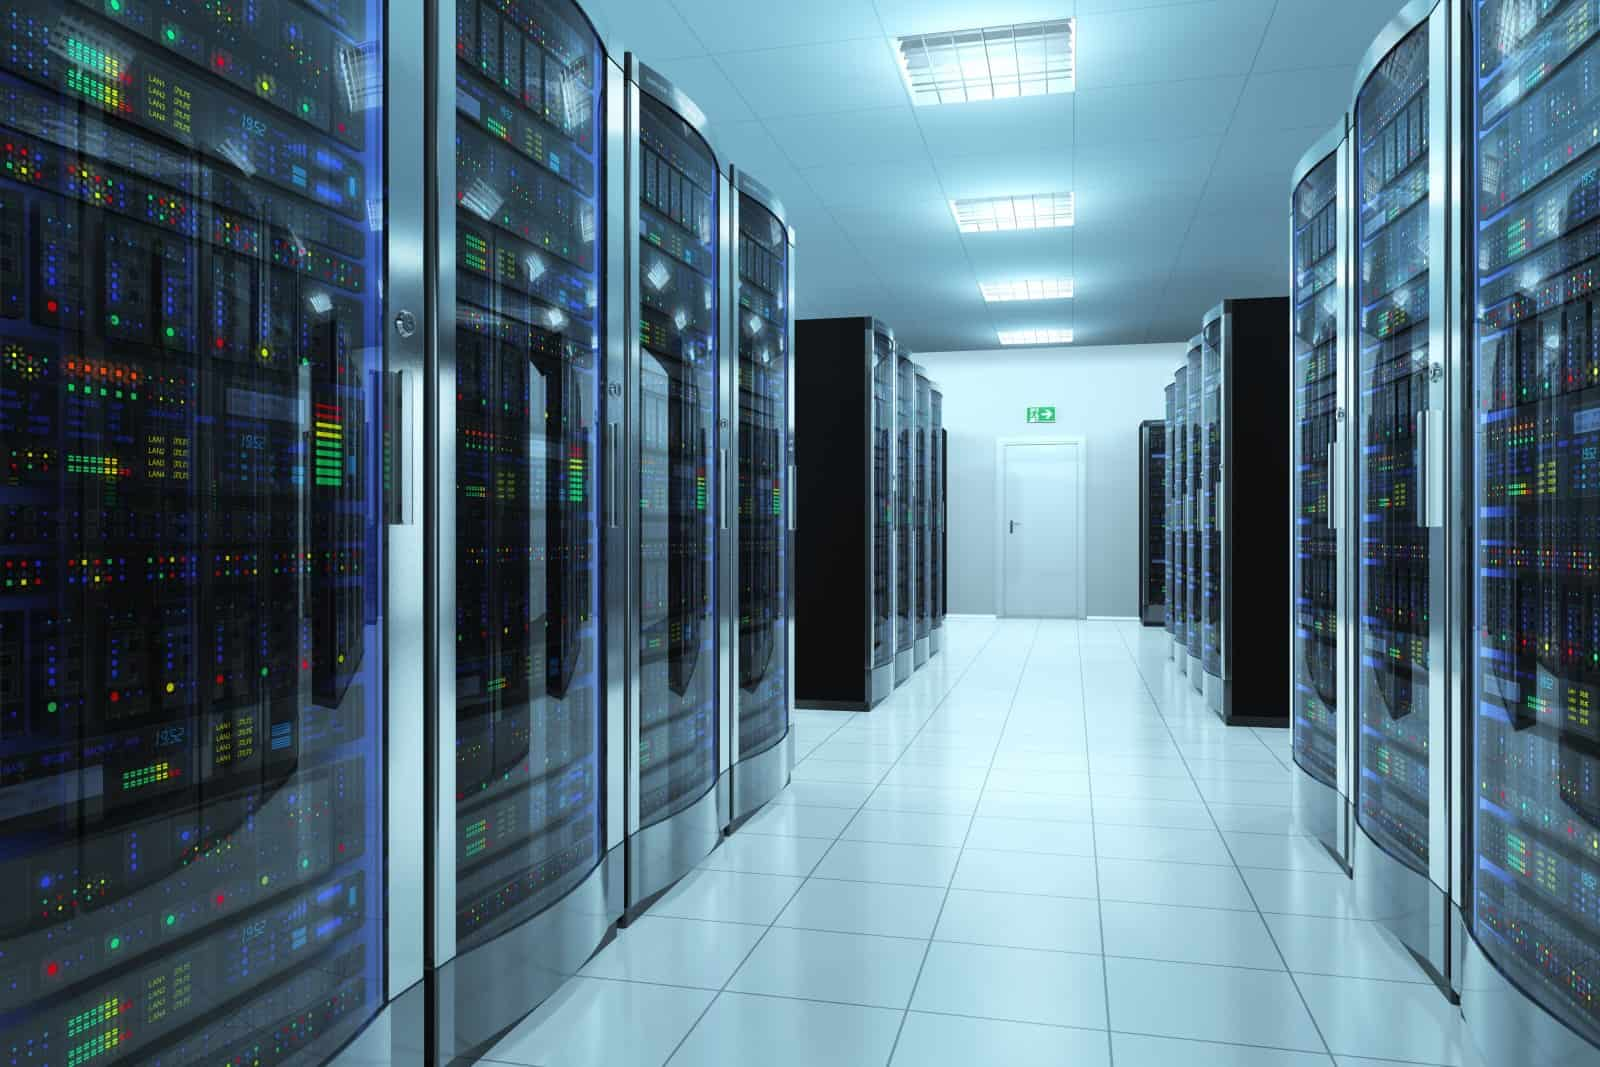 Cloud computing data centre in Australia